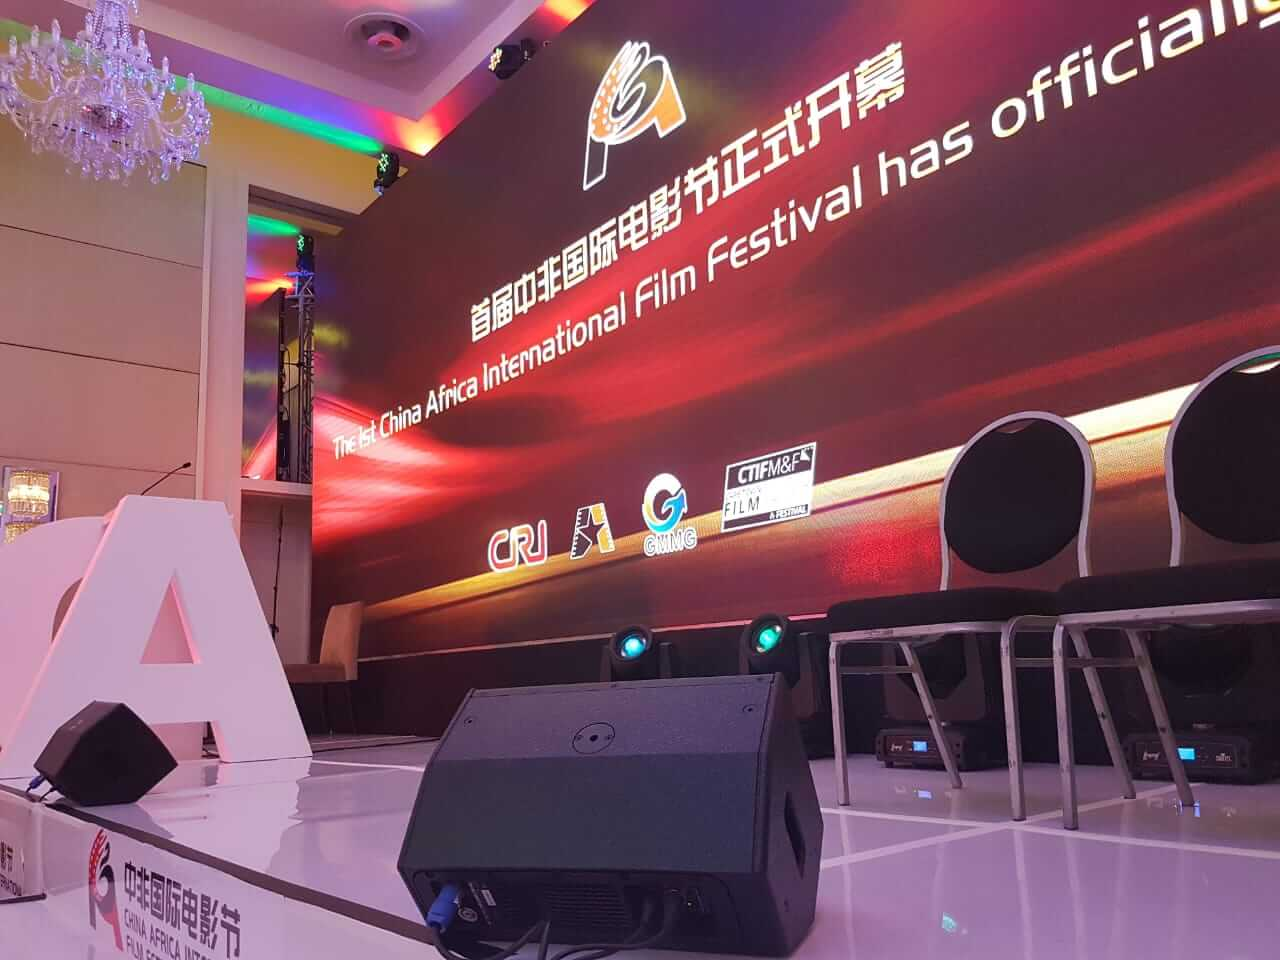 china film festival video screen, lighting and stage